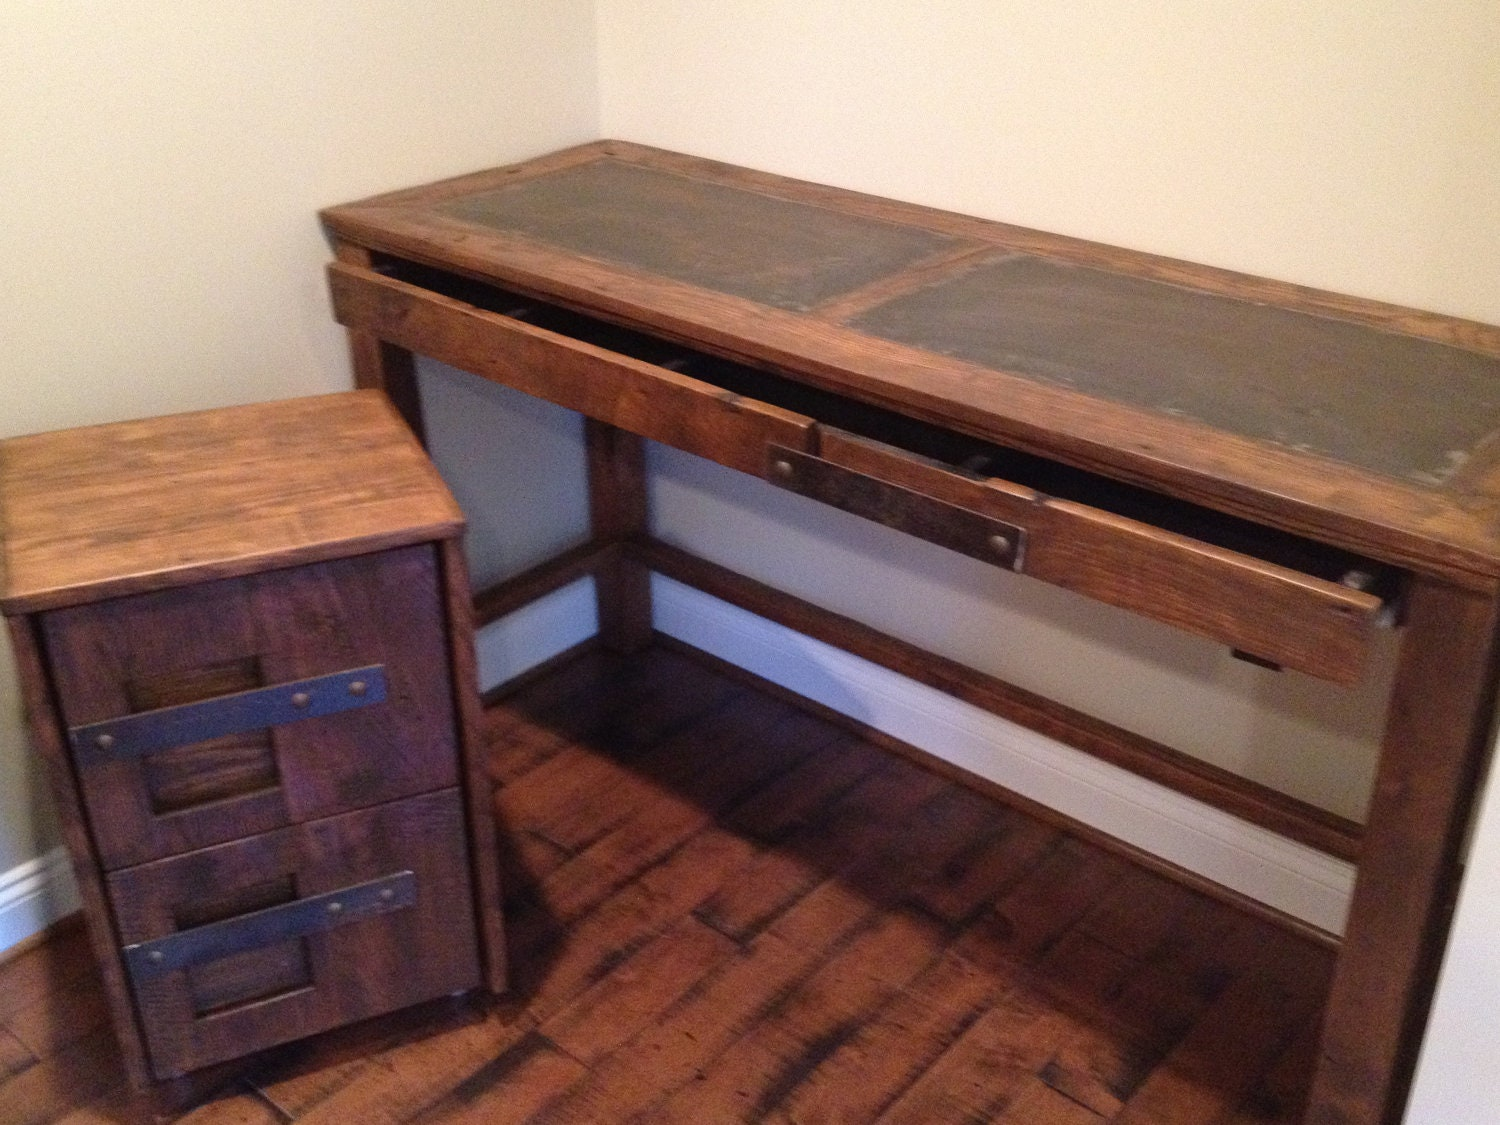 ... Old Desk For Some Boring Old Office Spaceu2013 Bring Some Style Into Your  Business Or Home Office With This Gorgeous Steel And Solid Reclaimed Oak  Desk.